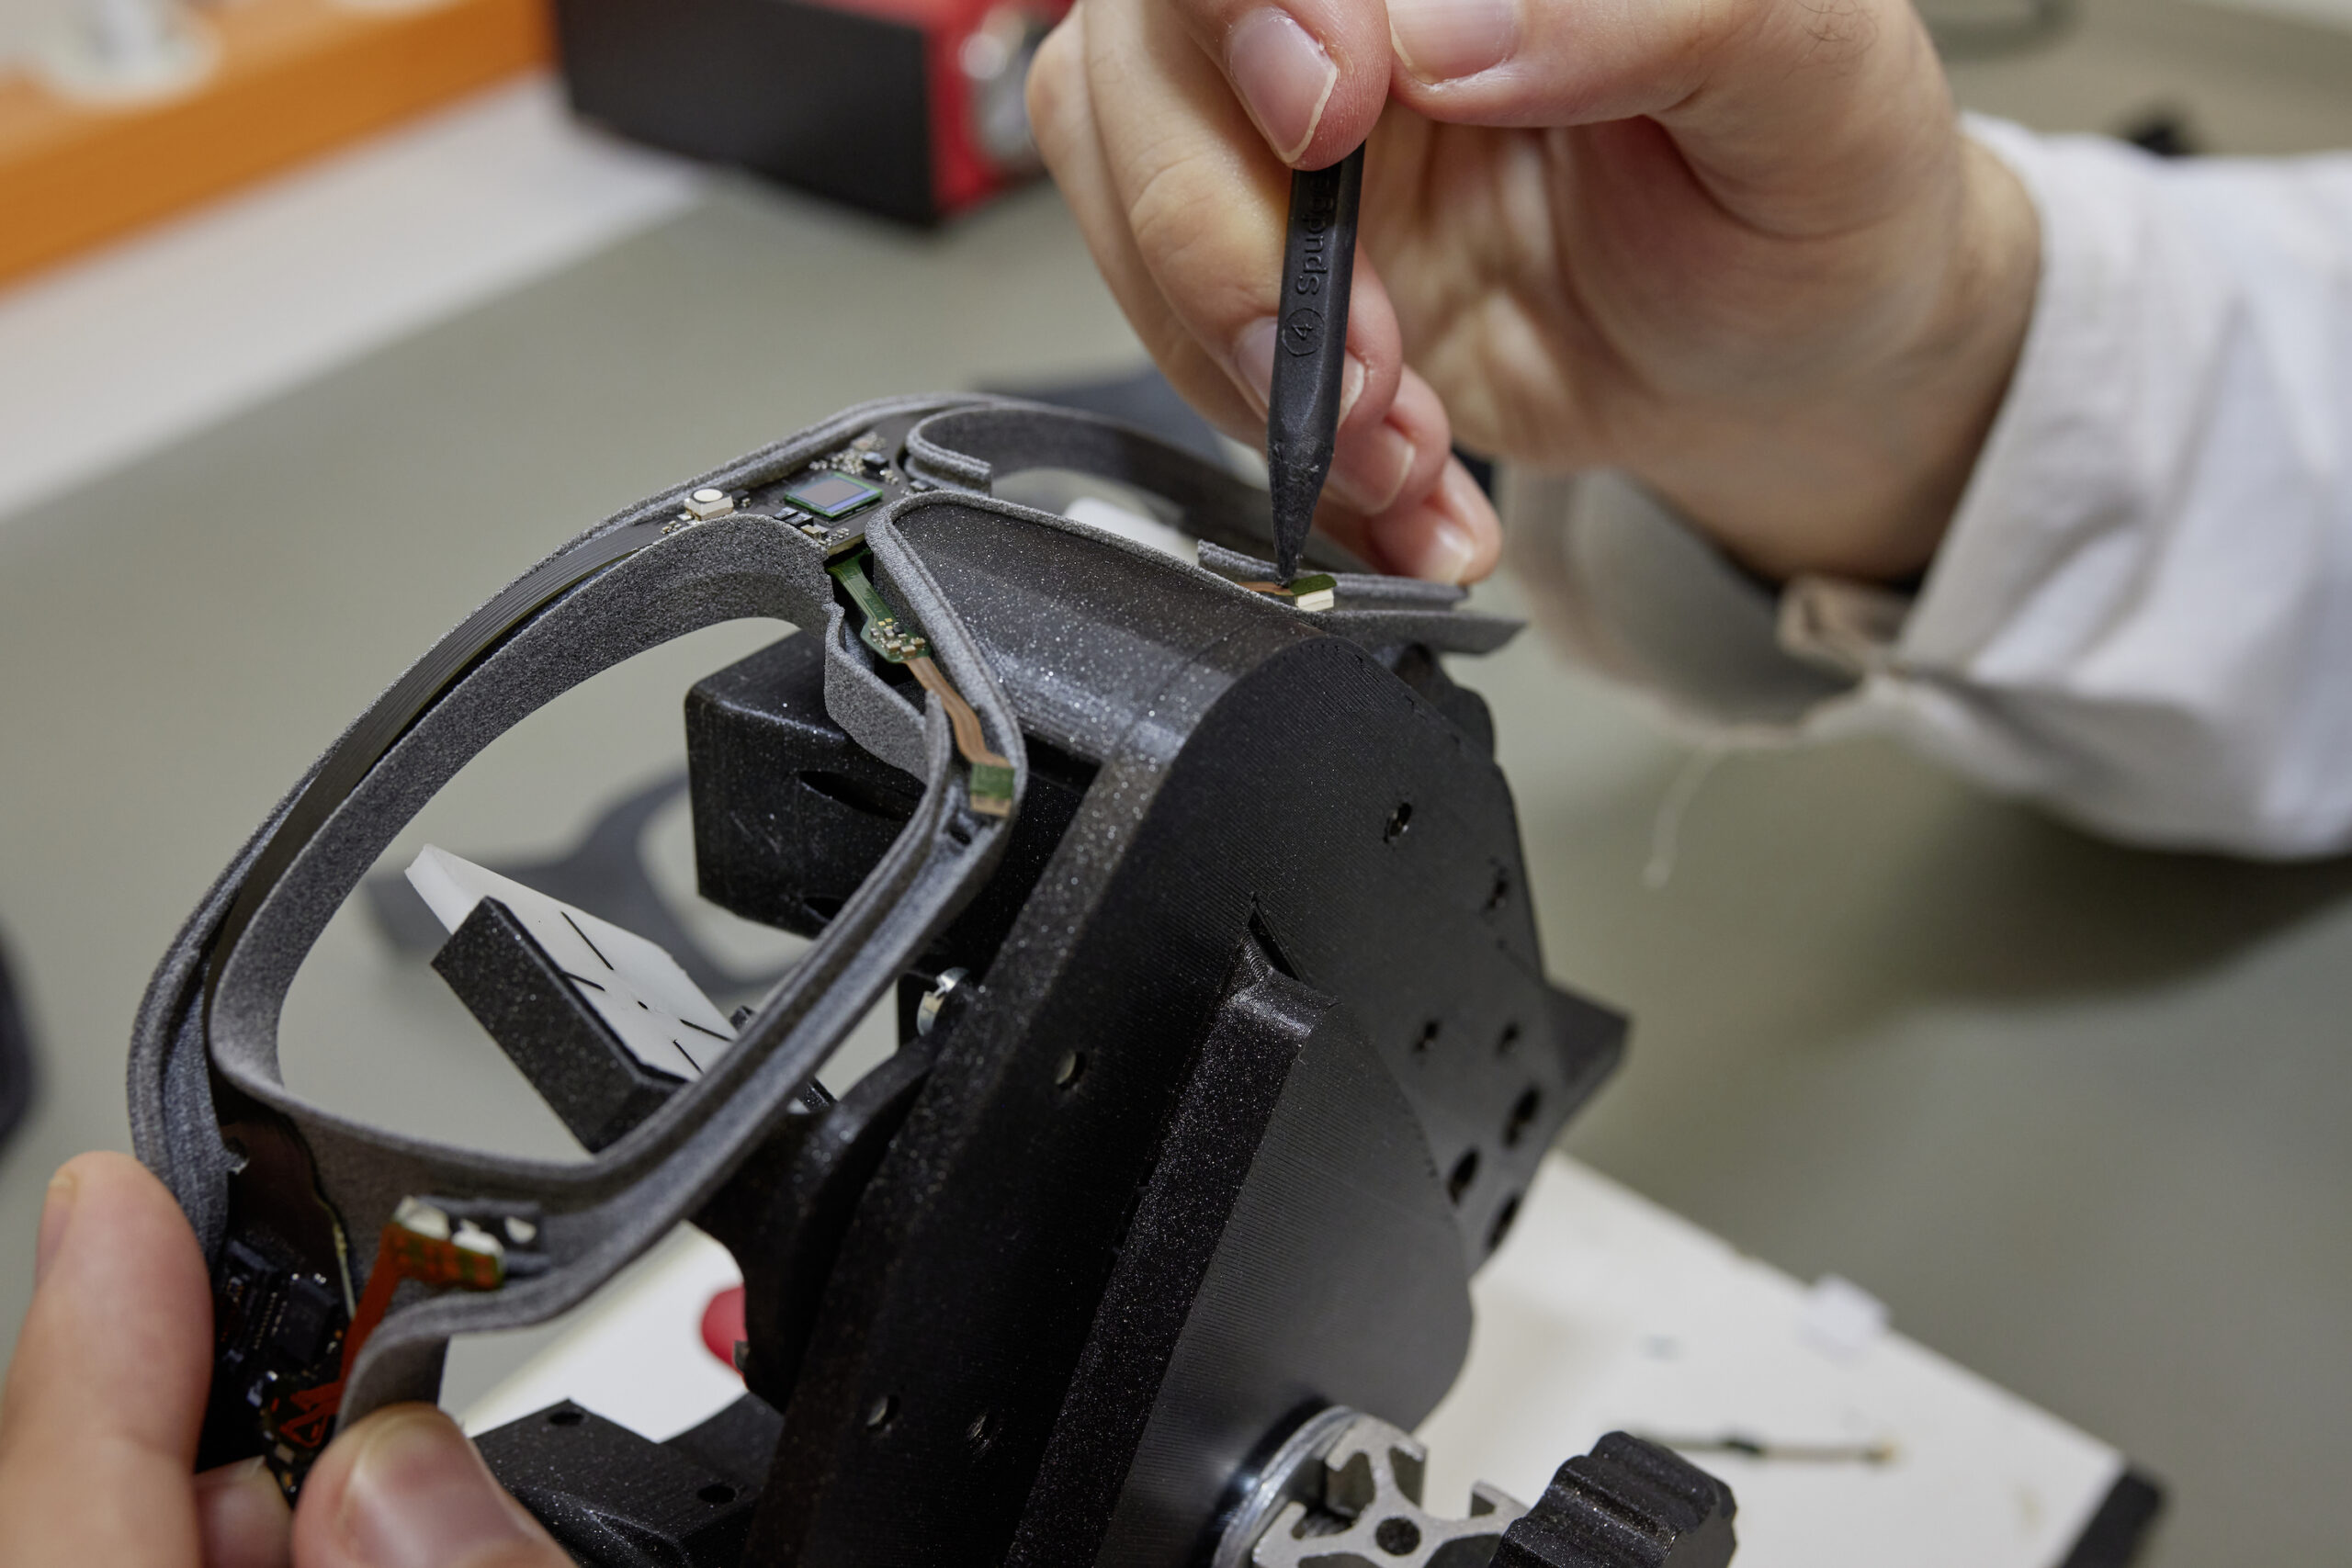 Micro assembling of the smart glasses